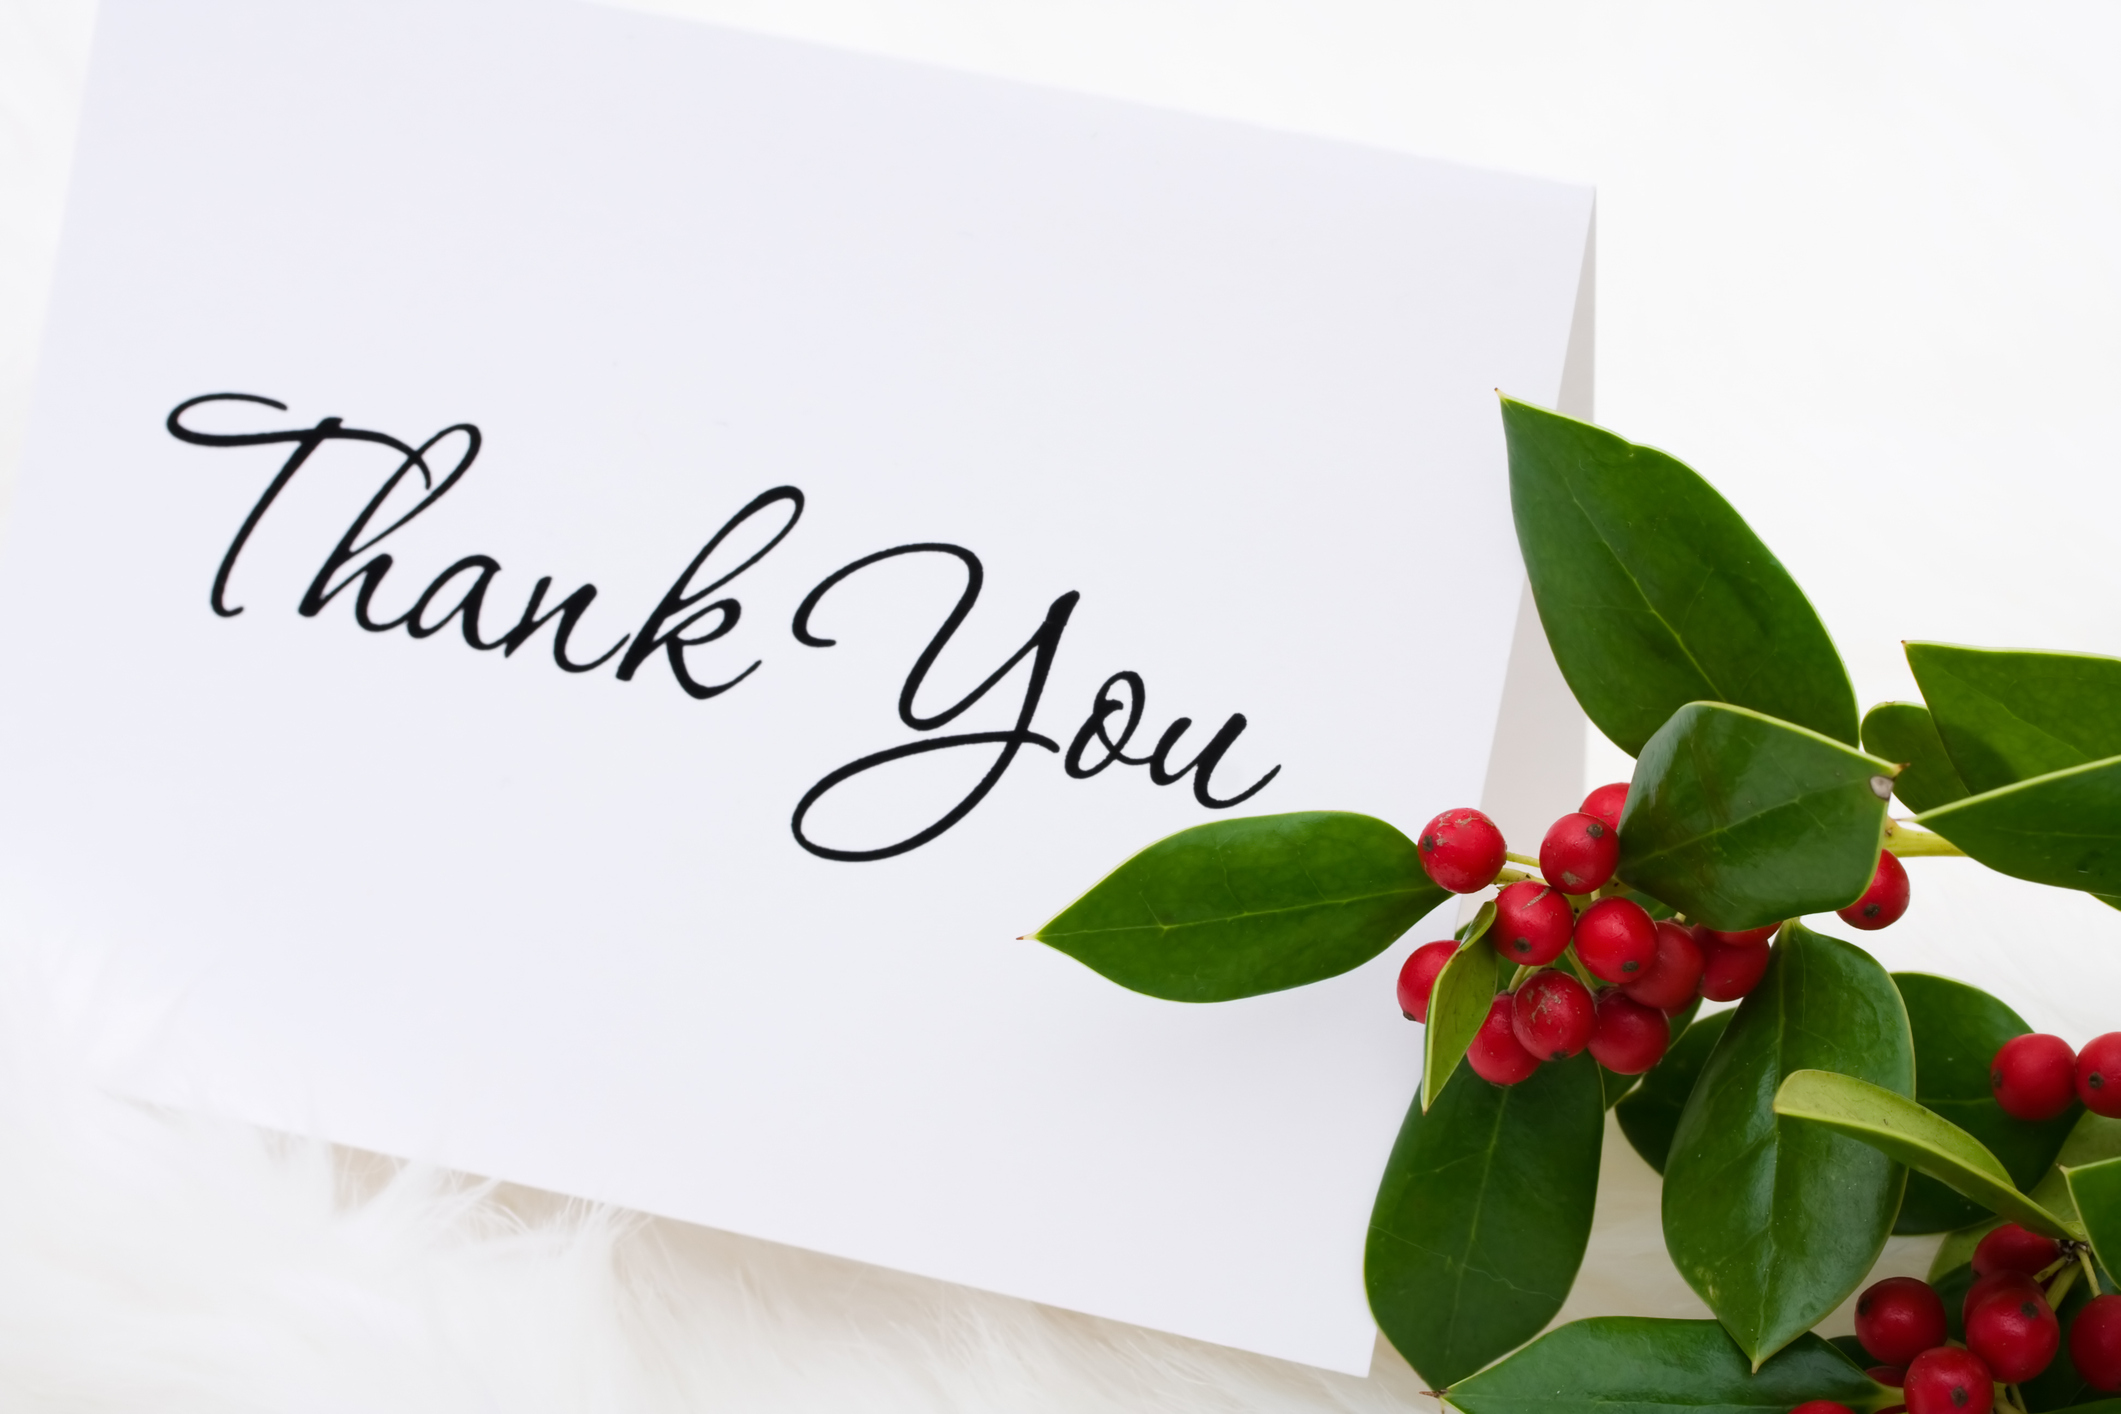 Image result for winter holiday images of thank you